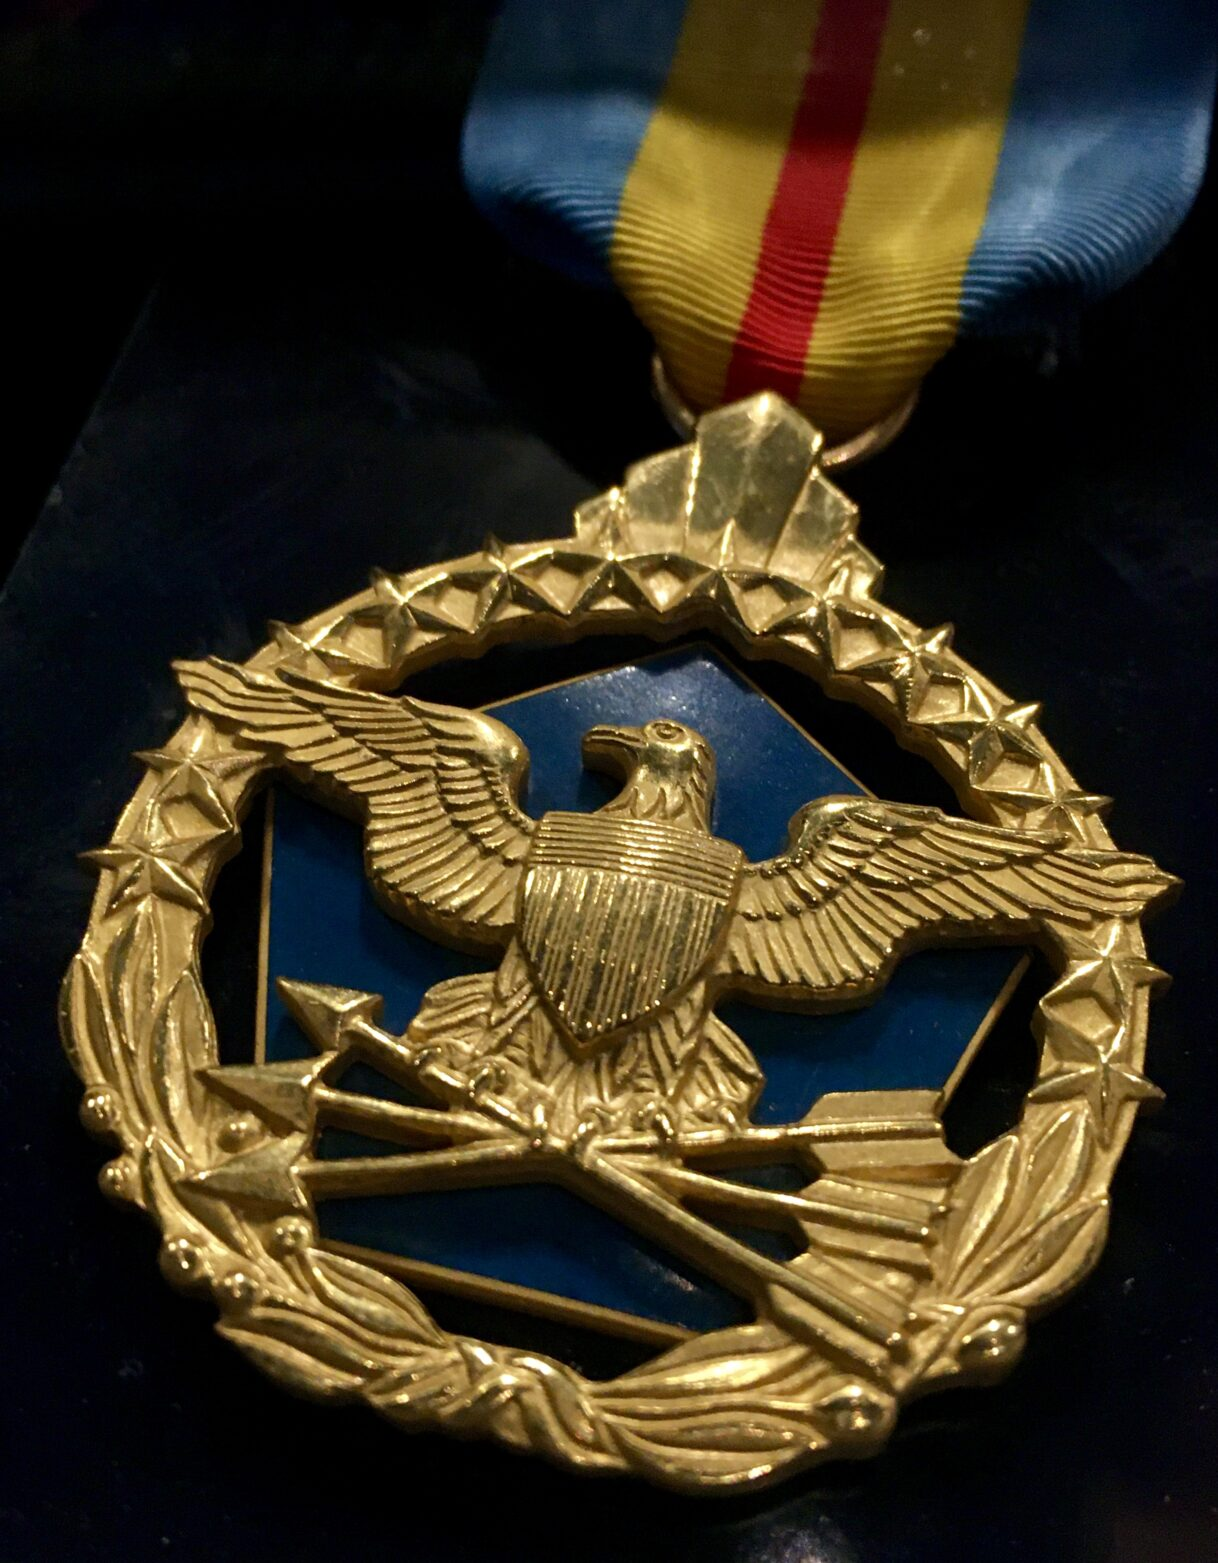 Museum of Aviation – United States Air Force Order of Medals – Warner Robins Air Force Base – Warner Robins, Georgia – 05/04/2021